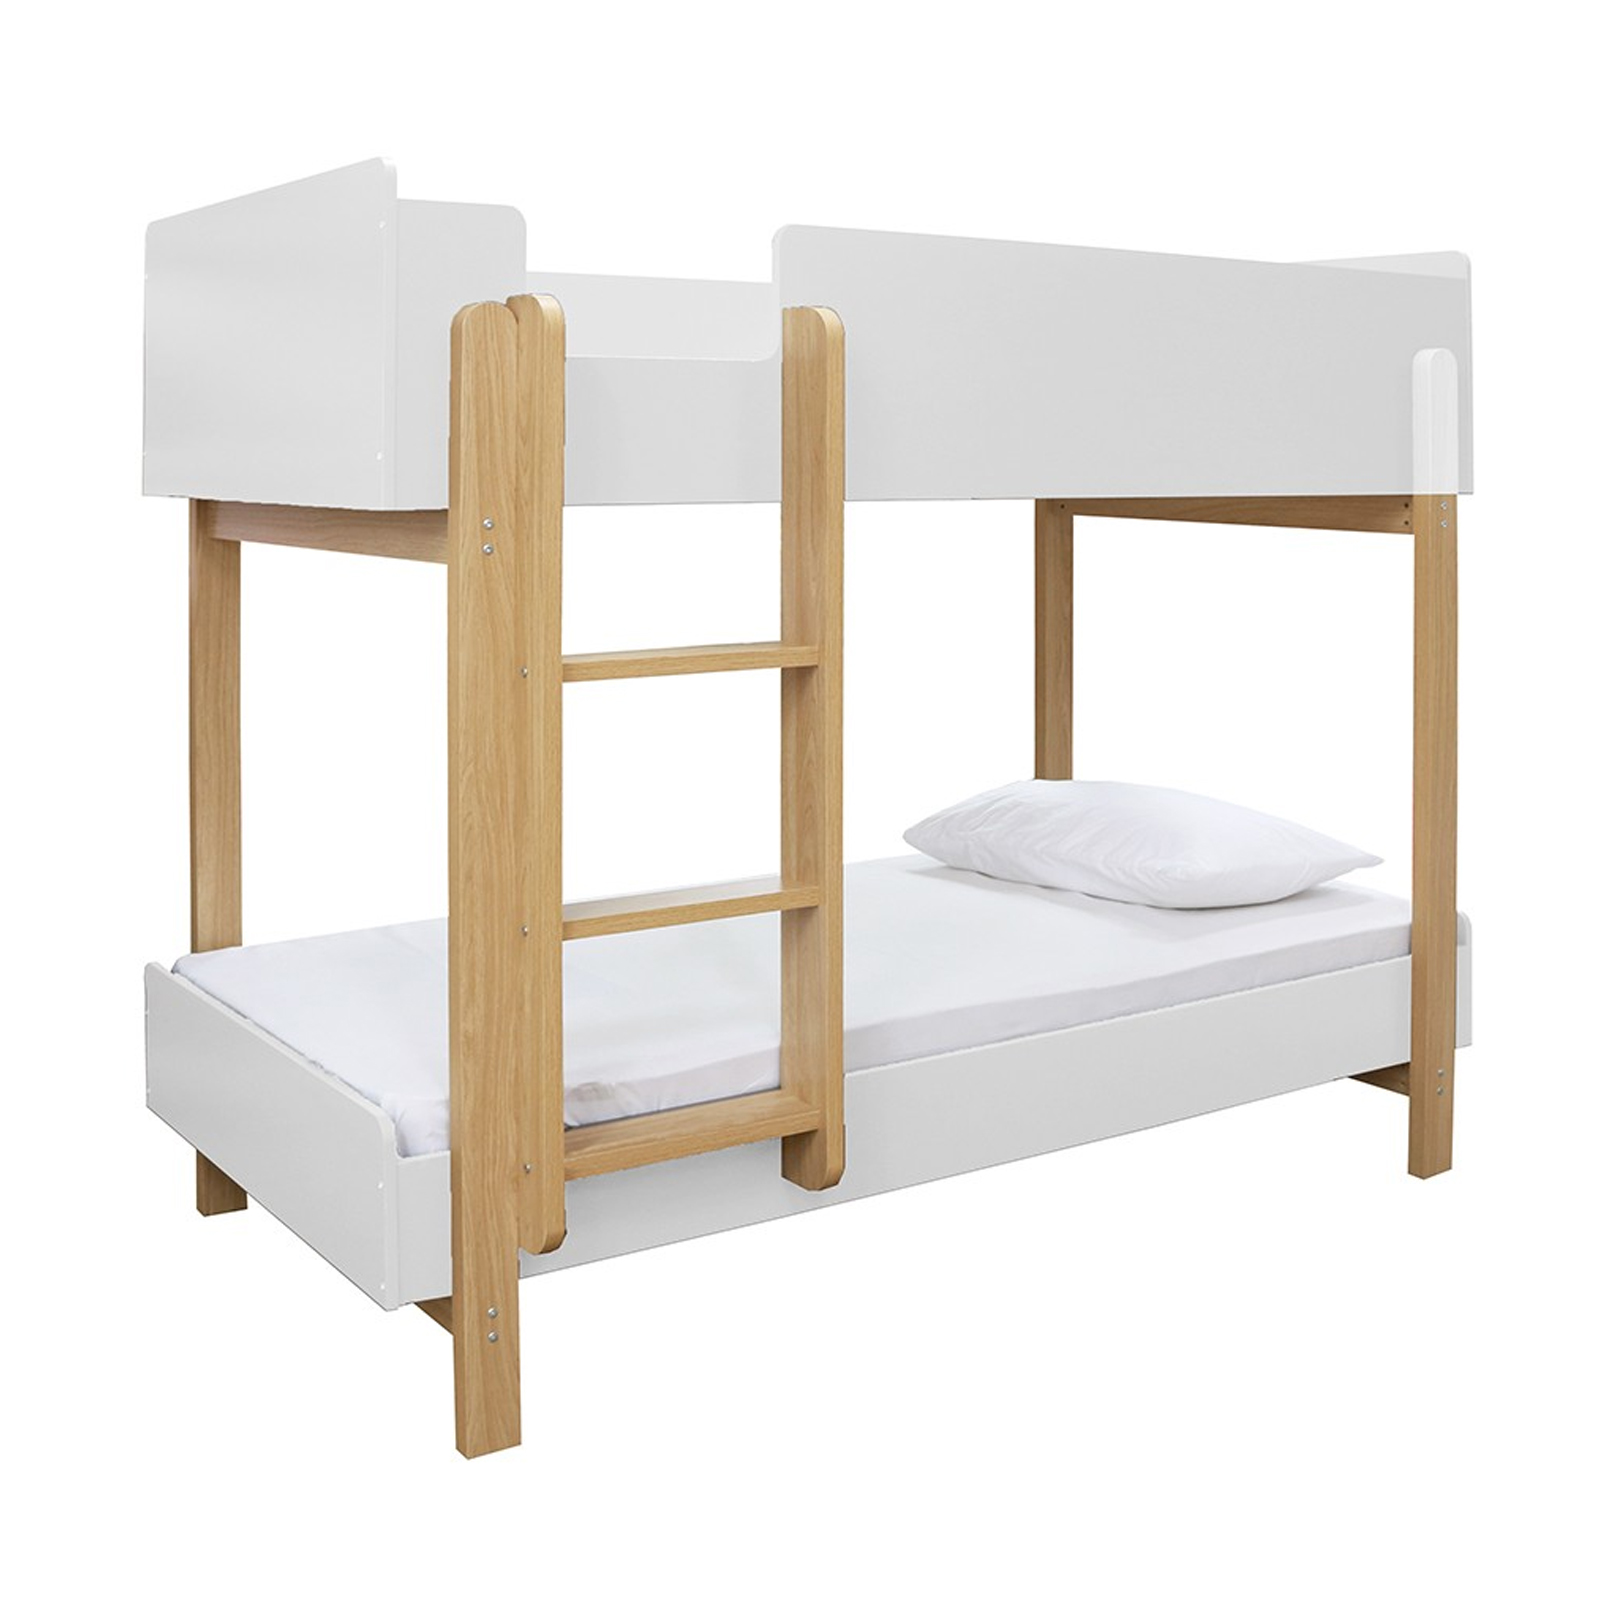 White Wooden Bunk Beds Hero Wooden Grey Or White Navy Bunk Bed Sleep Kings